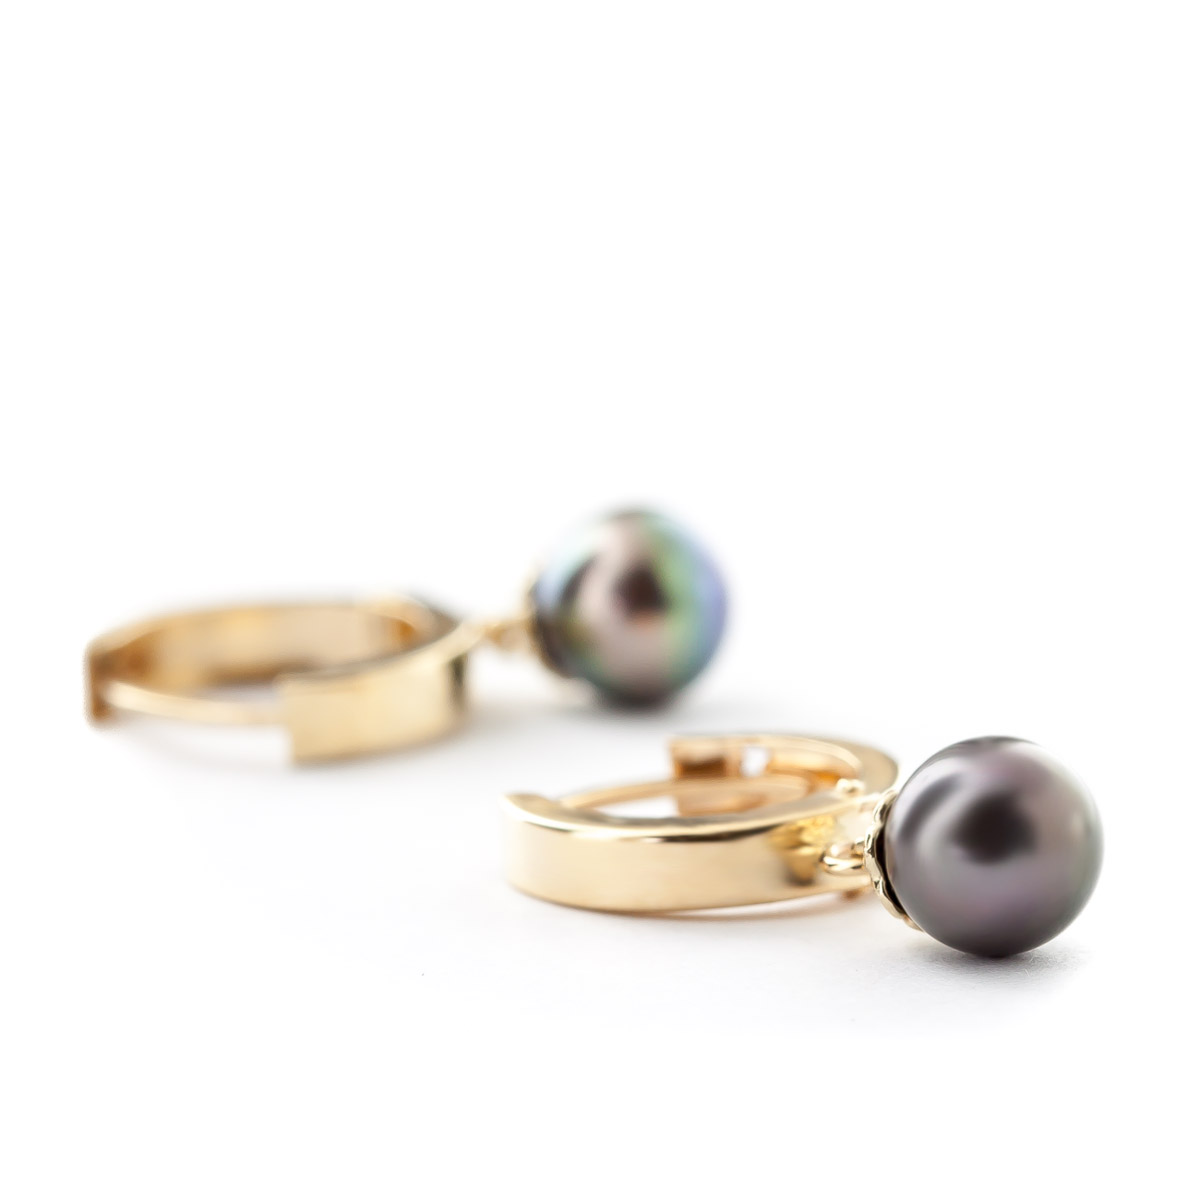 Black Pearl Drop Earrings 4.0ctw in 14K Gold